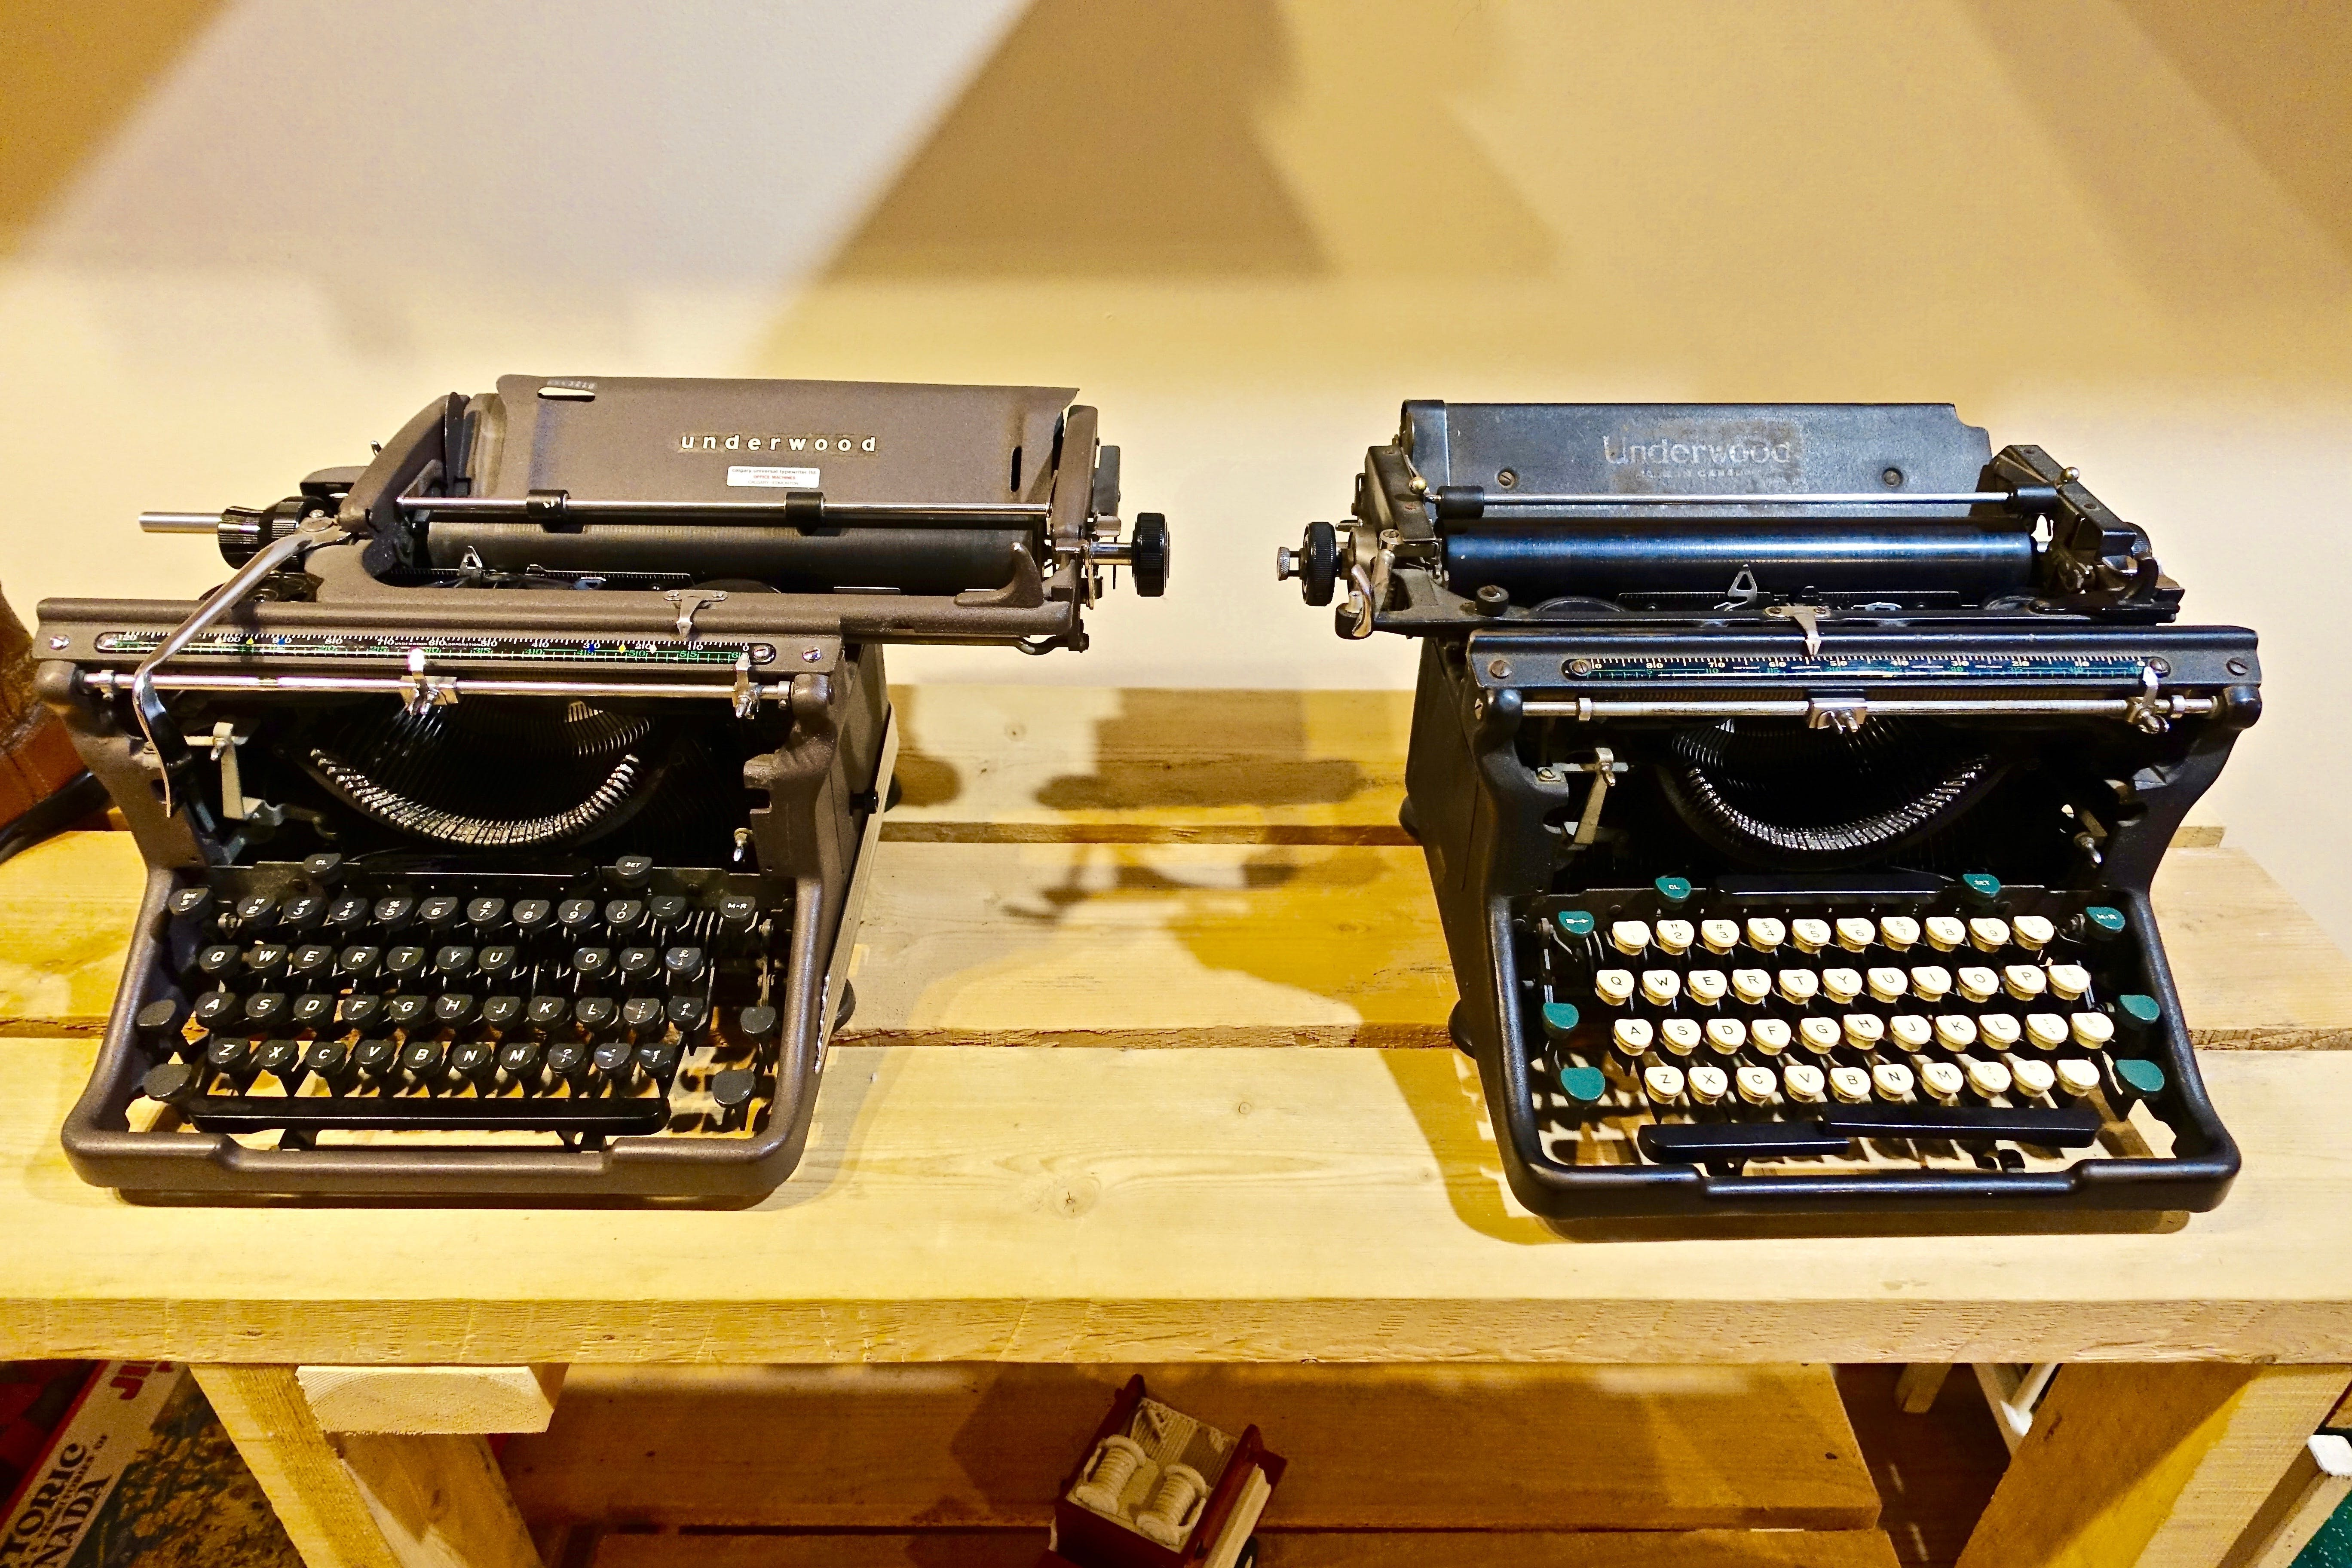 Two Black Typewriters on Wooden Table